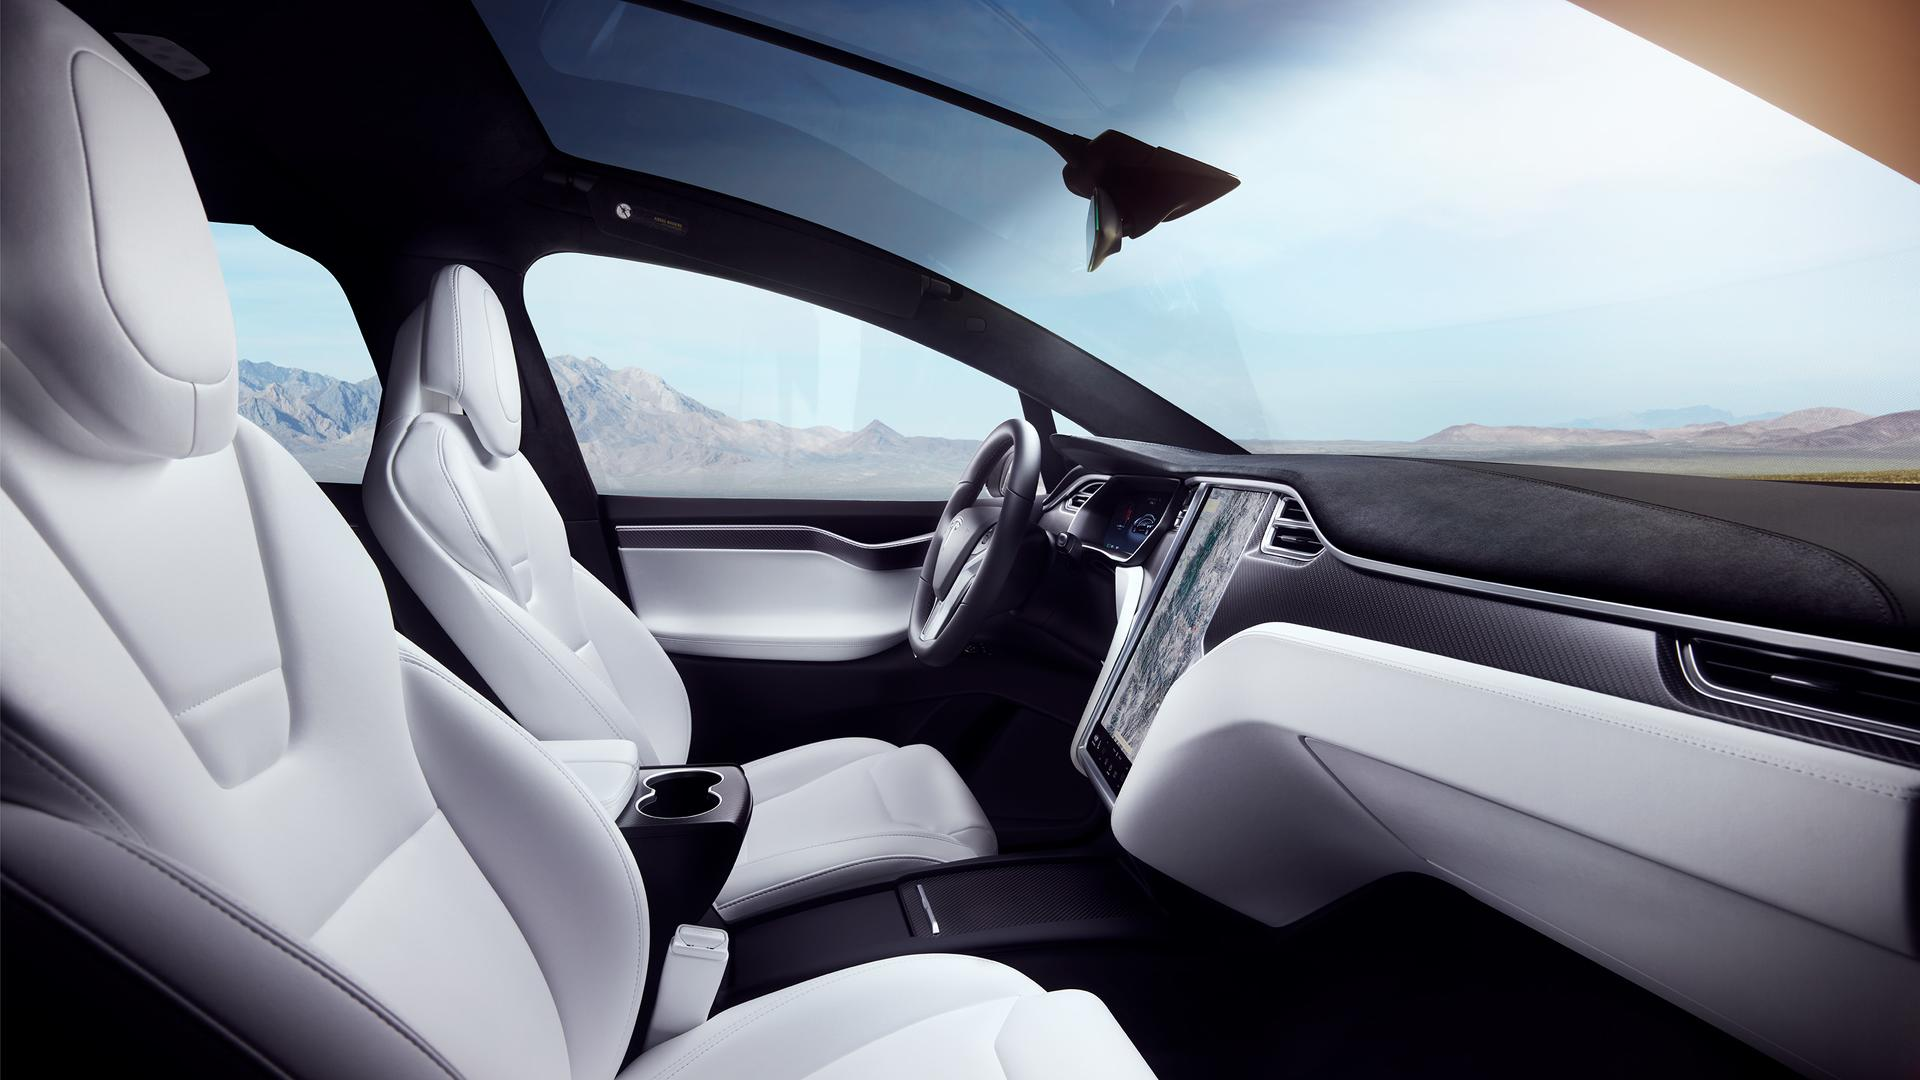 tesla model x prix car design today. Black Bedroom Furniture Sets. Home Design Ideas